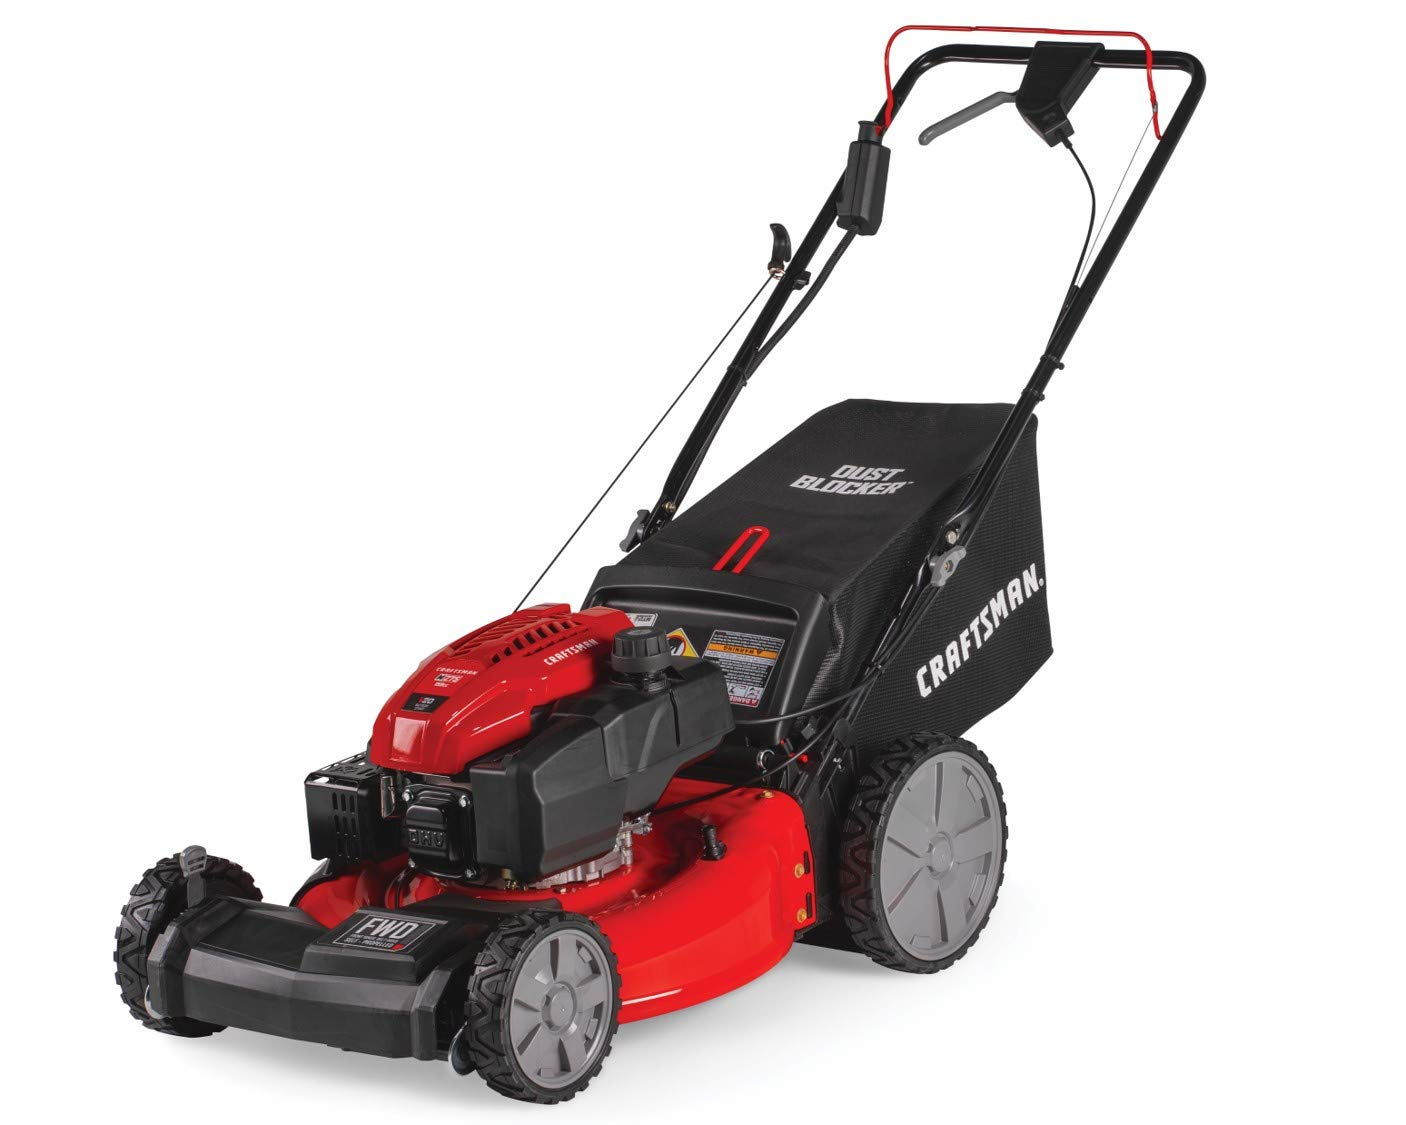 Craftsman M275 159cc 21-Inch 3-in-1 High-Wheeled Self-Propelled FWD Gas Powered Lawn Mower, with with Bagger, Red by Craftsman